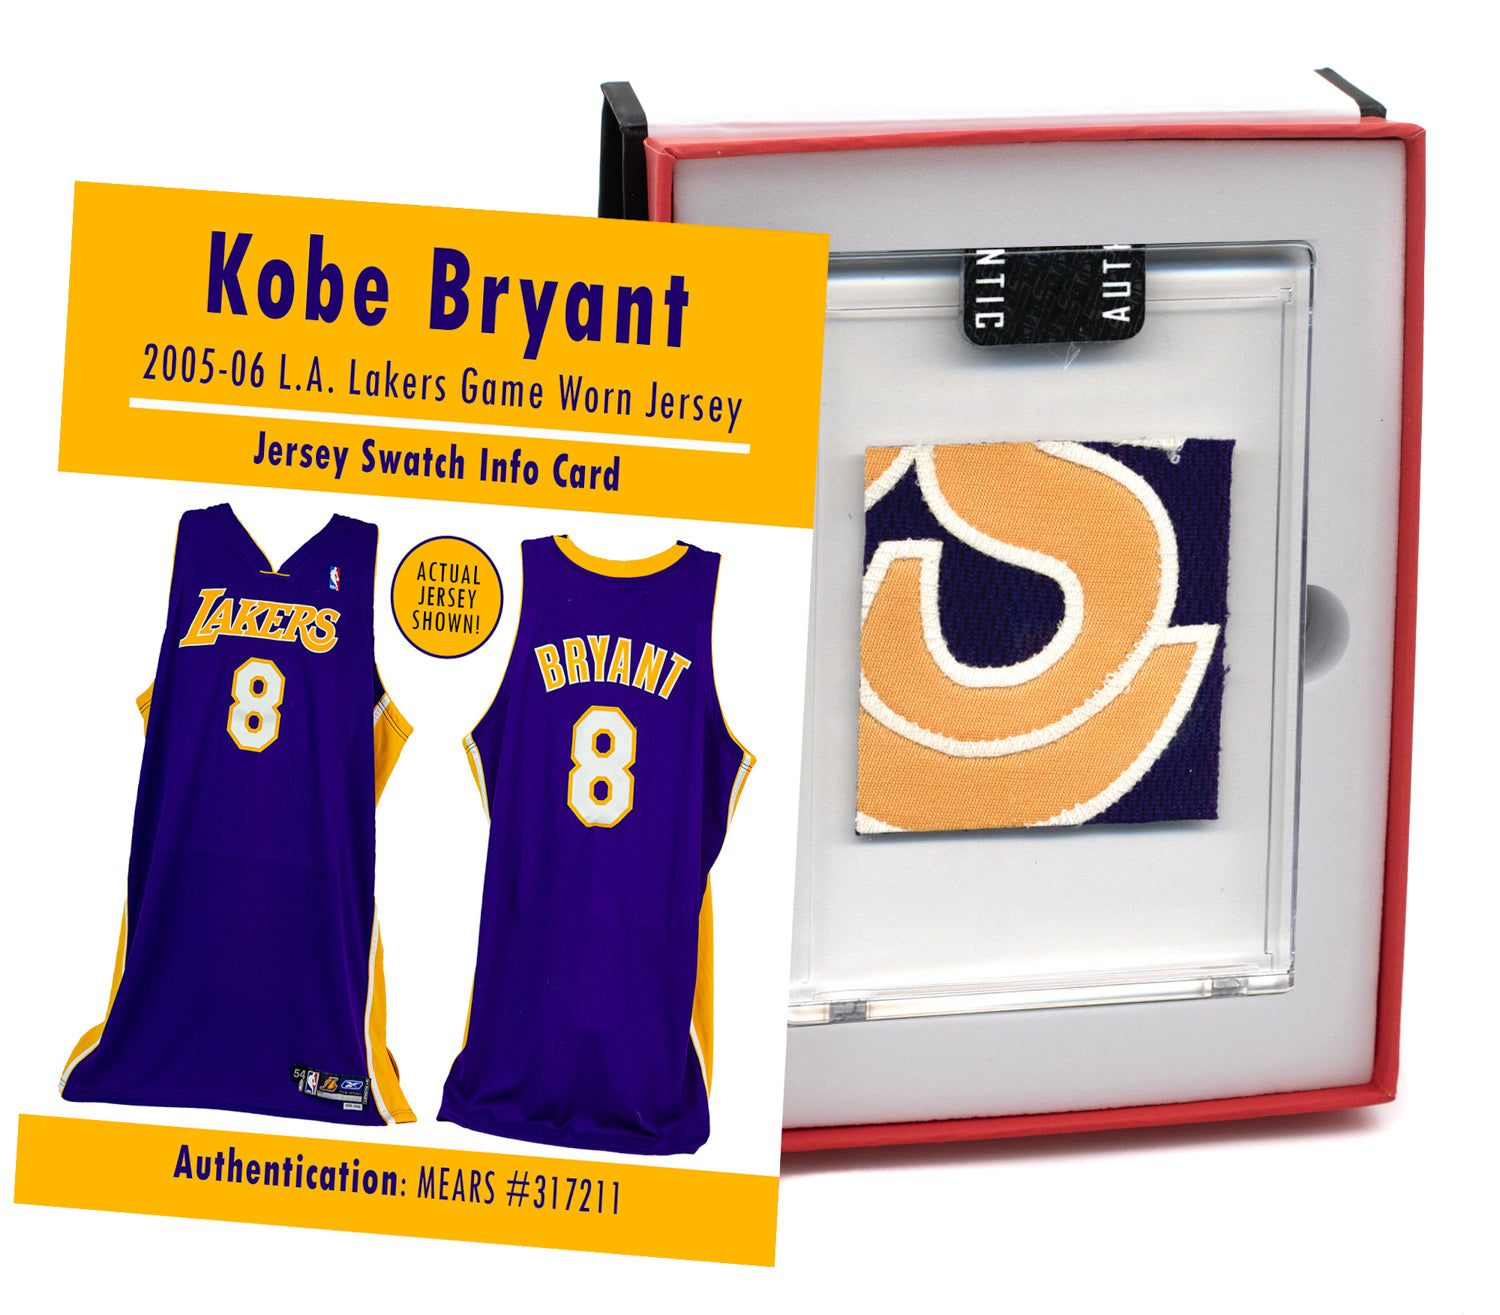 Kobe Bryant 2005-06 L.A. Lakers Game Worn Jersey Mystery Sealed Swatch Box